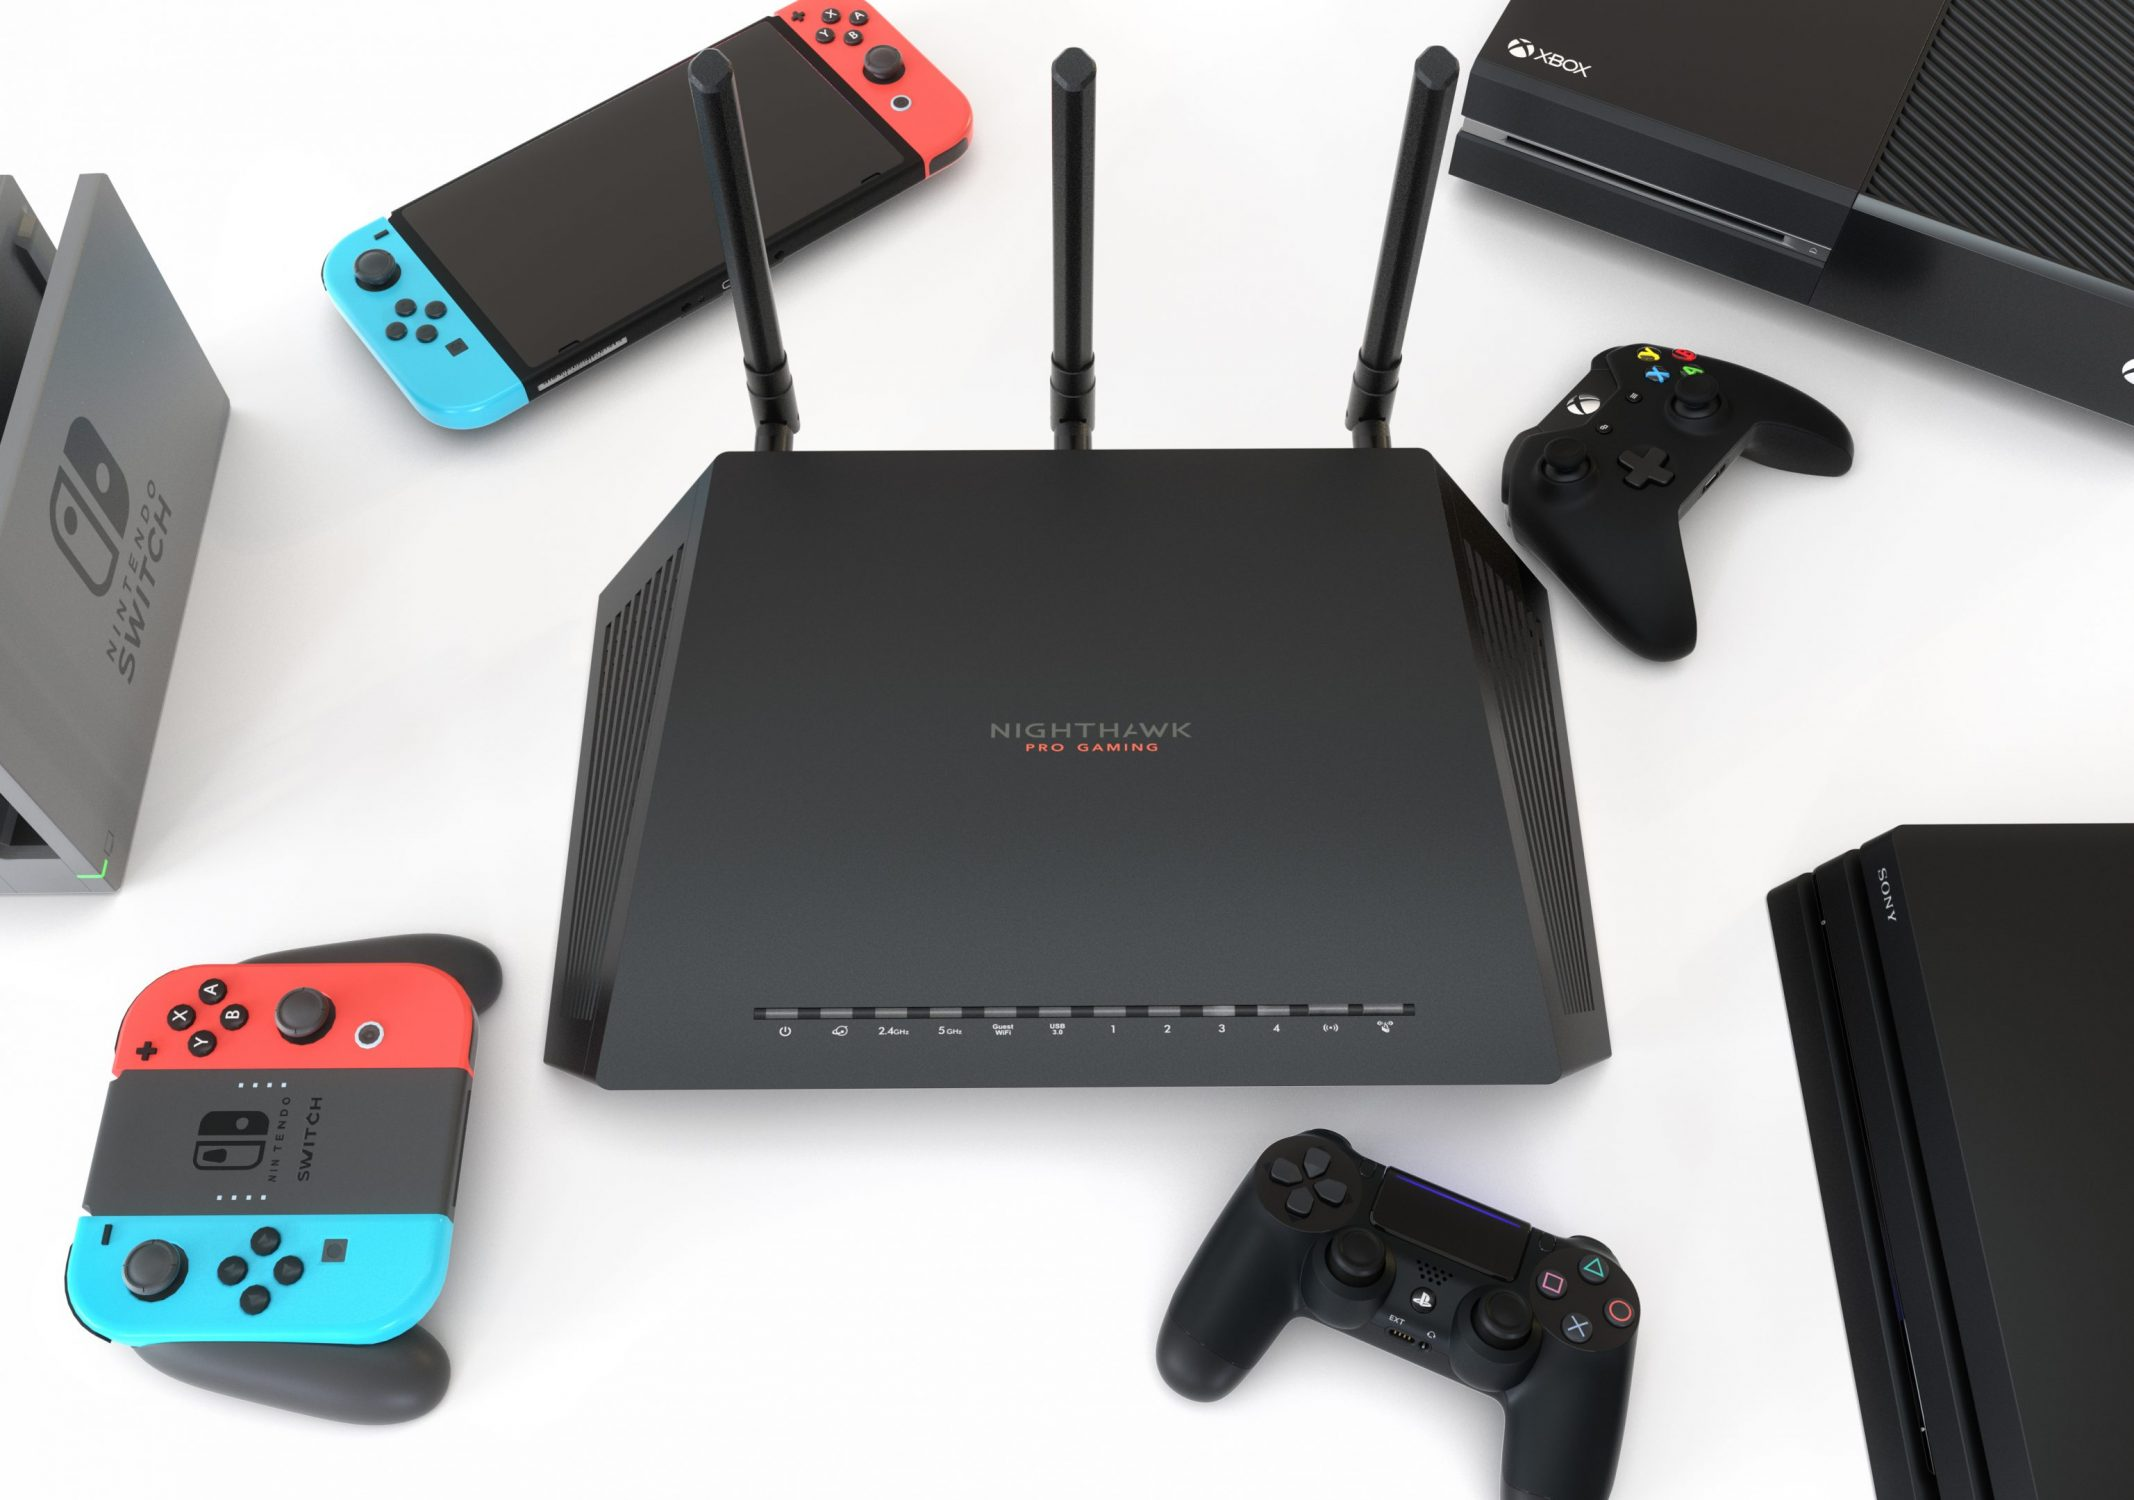 NETGEAR Smart Home & Pro Gaming Preview – Connecting People